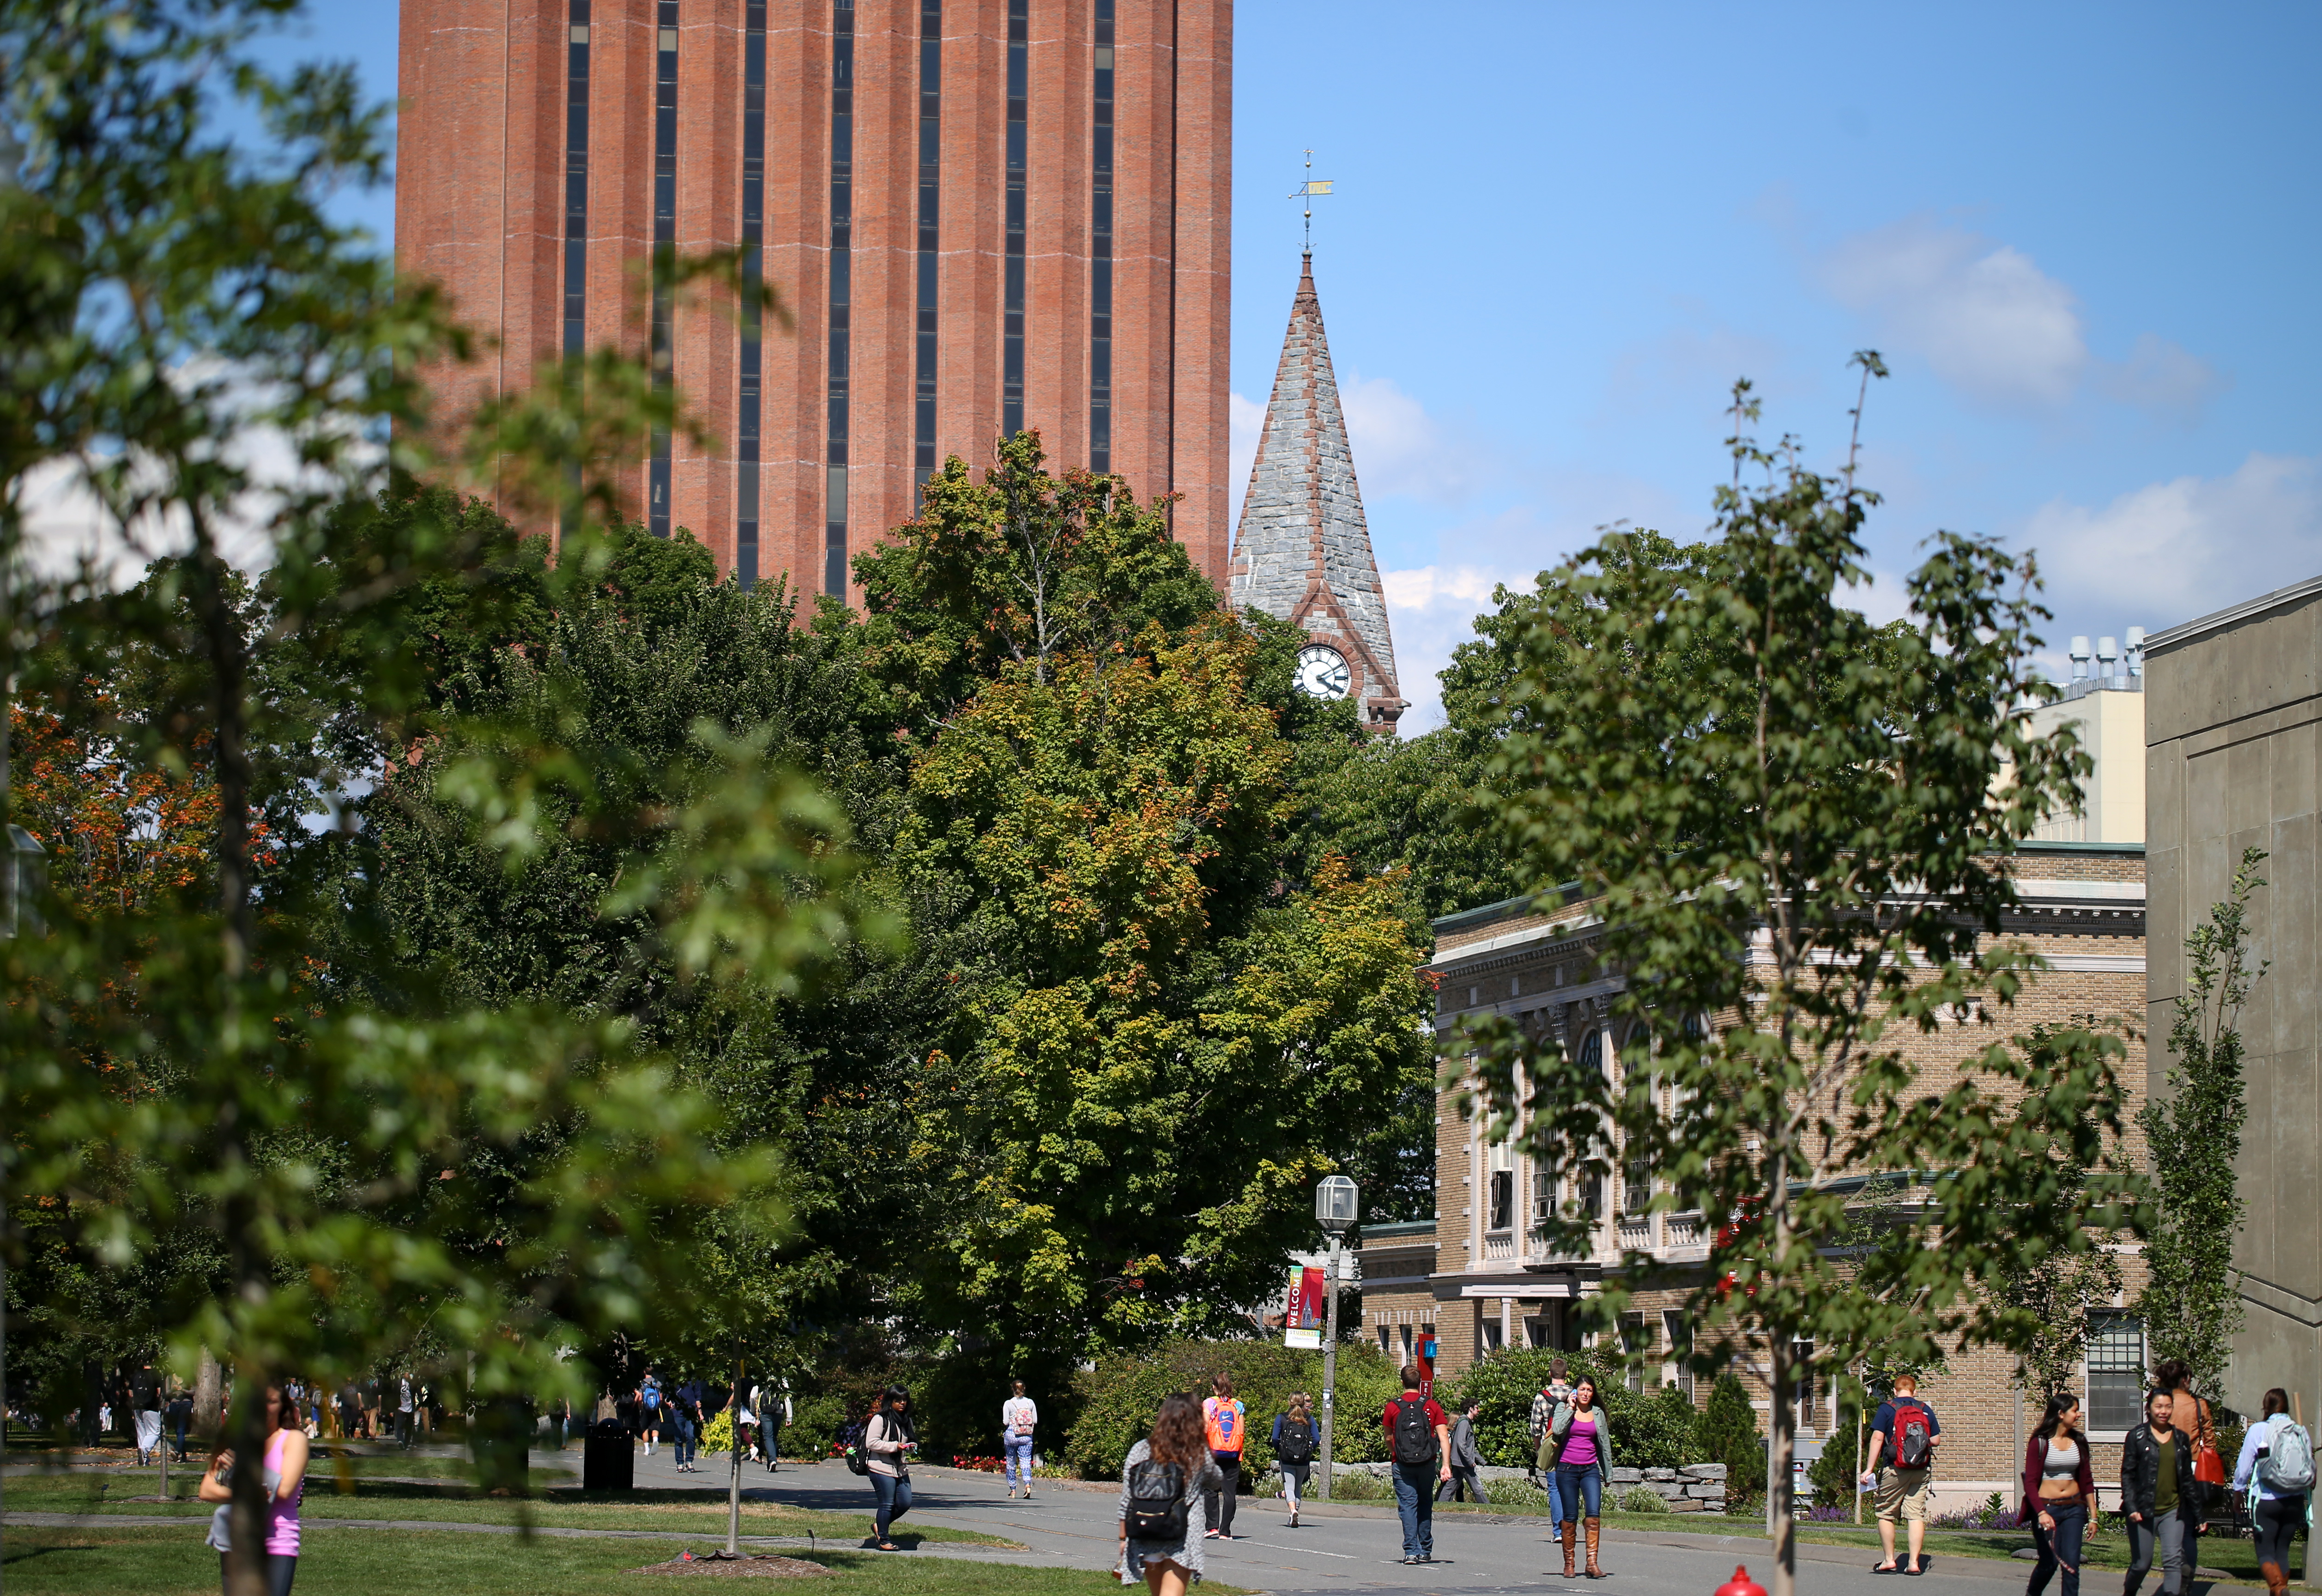 UMass Amherst students head across campus.